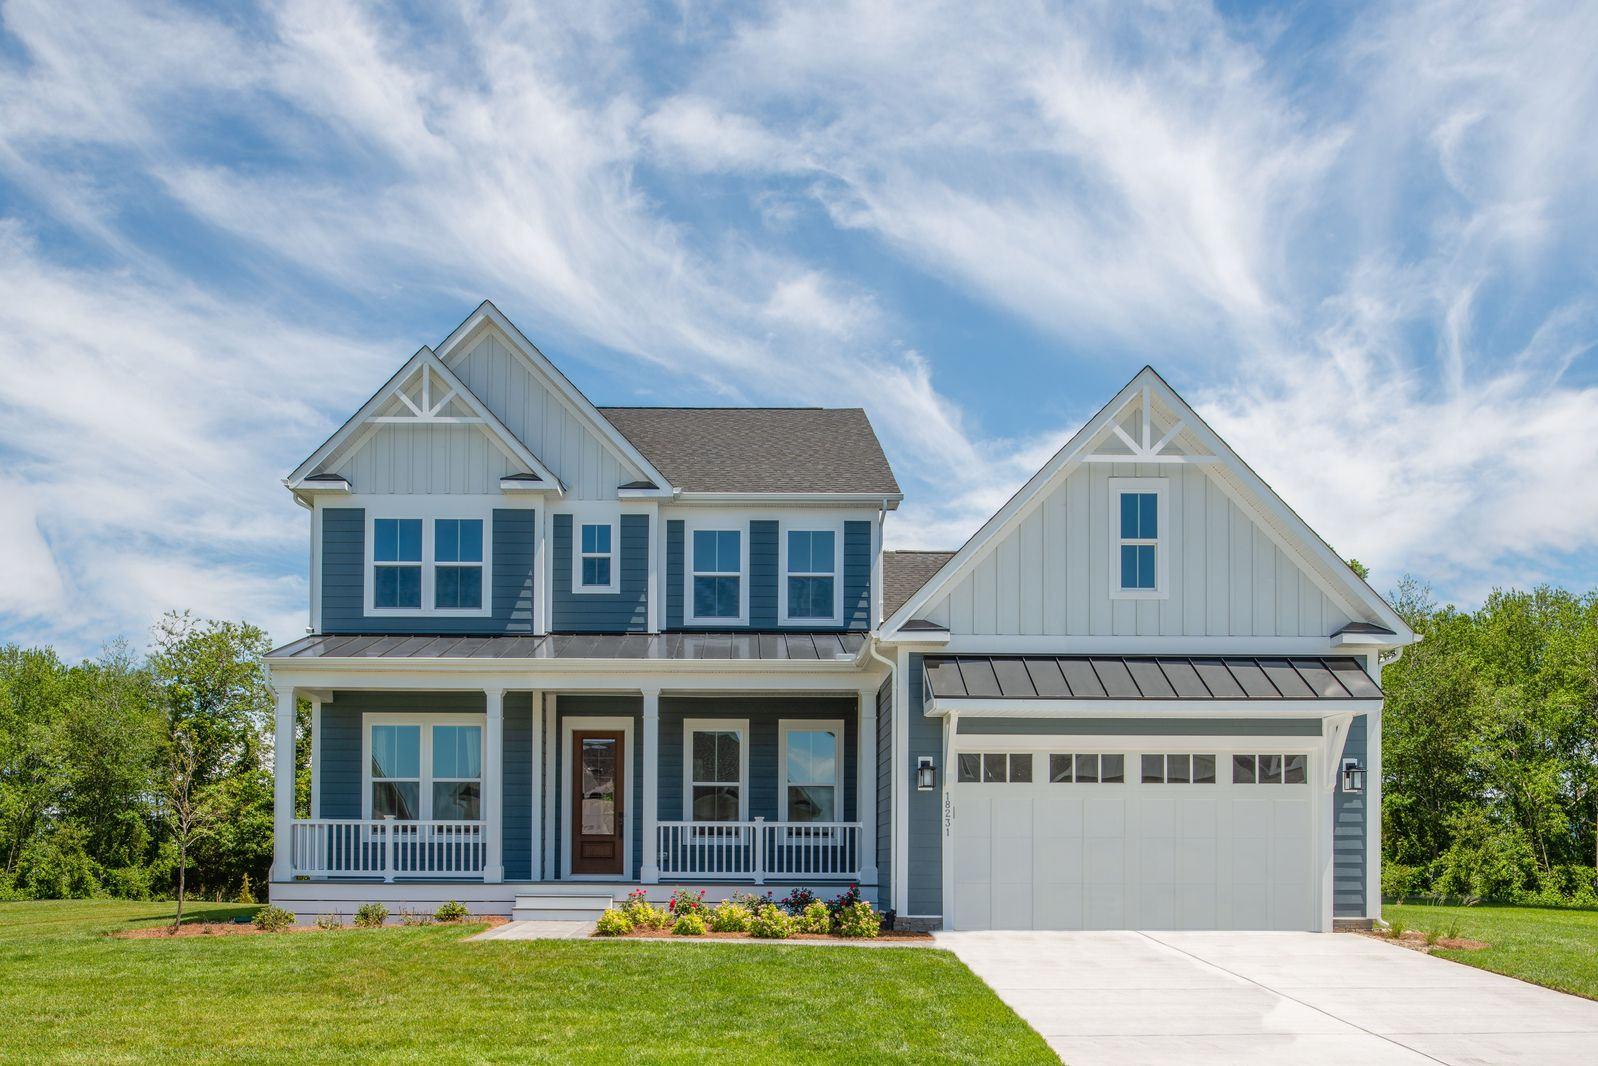 Welcome to Wellesley:Only new community of exclusively single-family homes in Rehoboth area. Luxury features included, homesites up to 17,000 sqft & basements available.